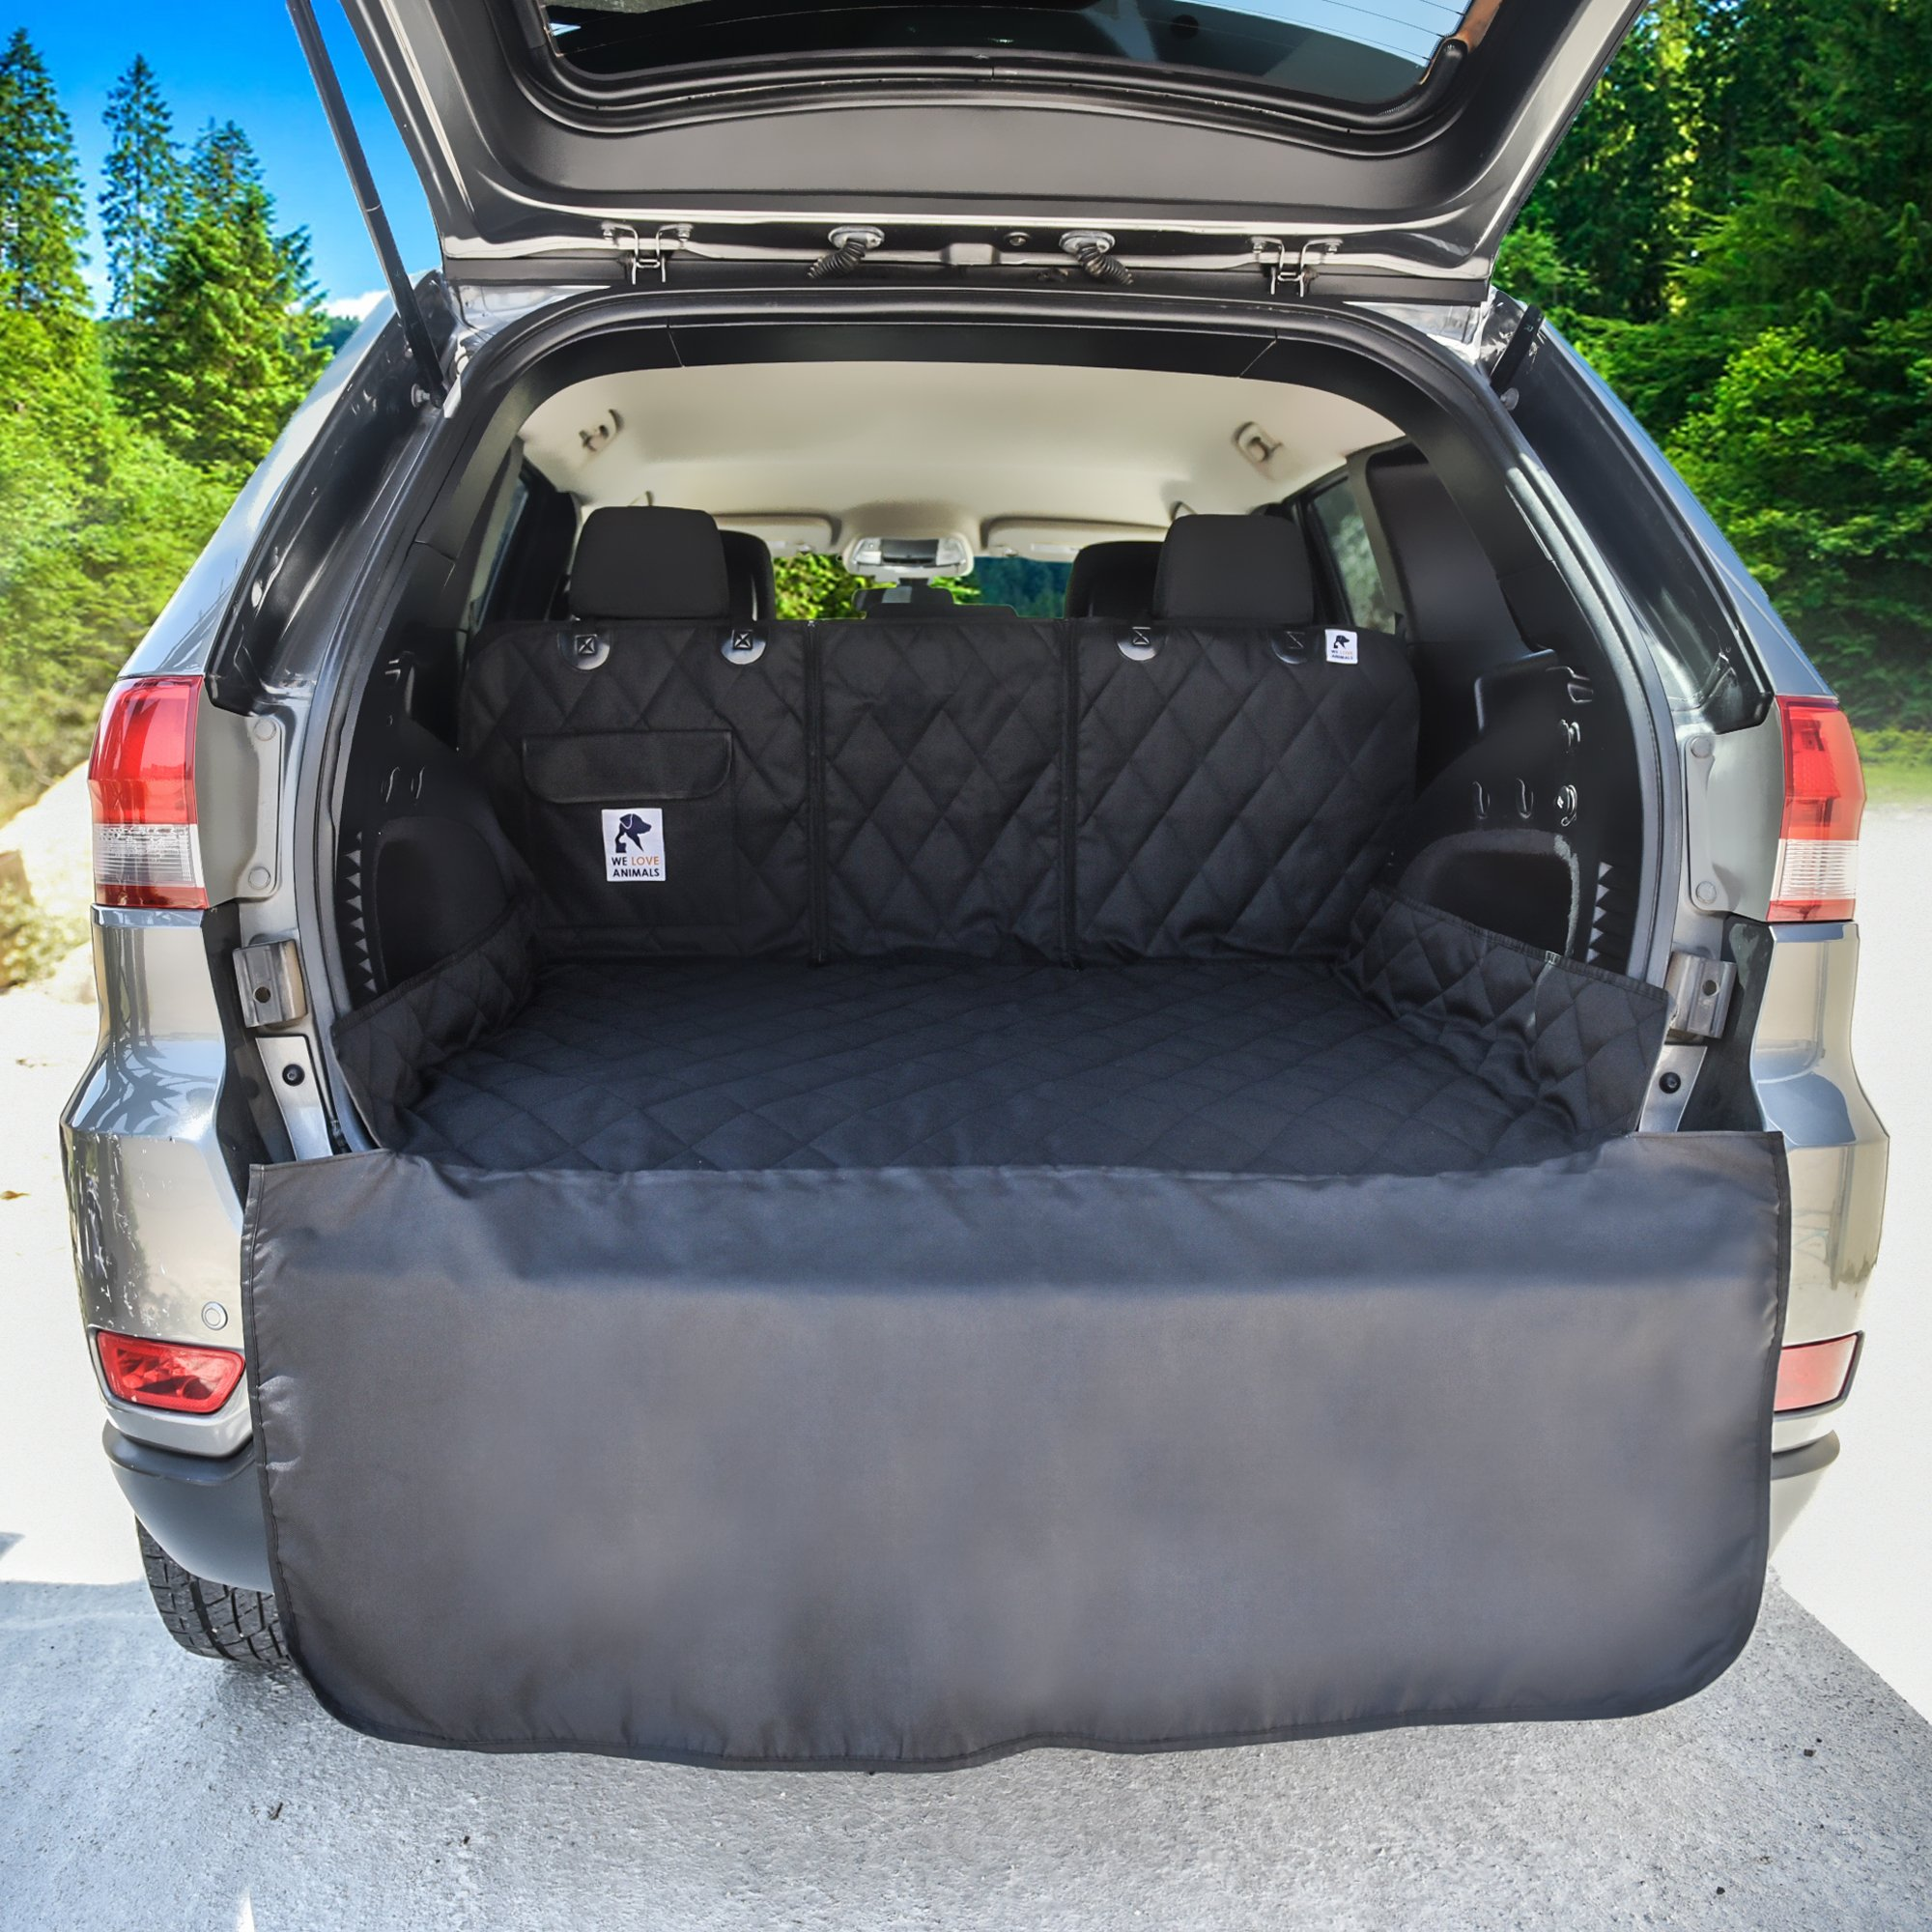 Dog Cargo Liner for SUV, Van, Truck & Jeep - Waterproof, Machine Washable, Nonslip Pet Seat Cover with Bumper Flap will keep your vehicle as clean as ever - XL, Universal Fit - BONUS Carry Bag by WE LOVE ANIMALS (Image #8)